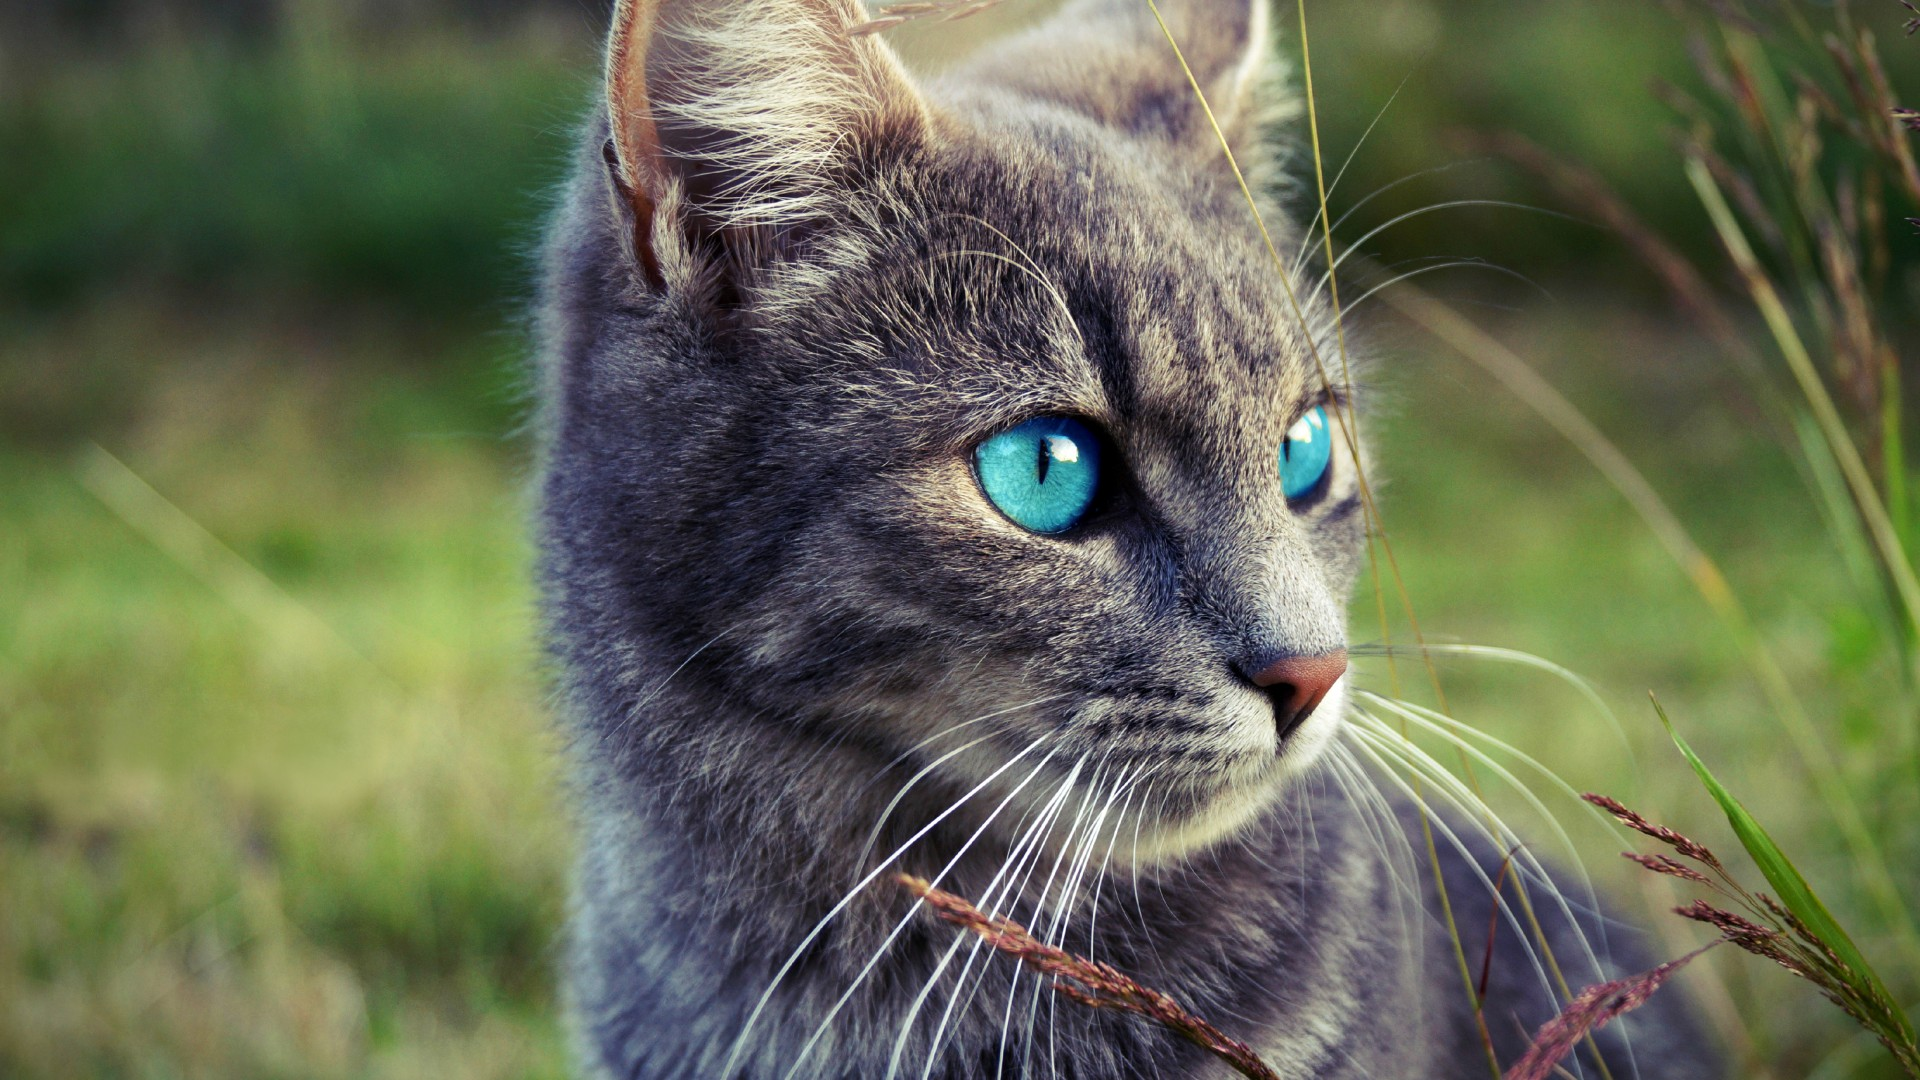 Image Portrait of grey little cat with blue eyes in reed field